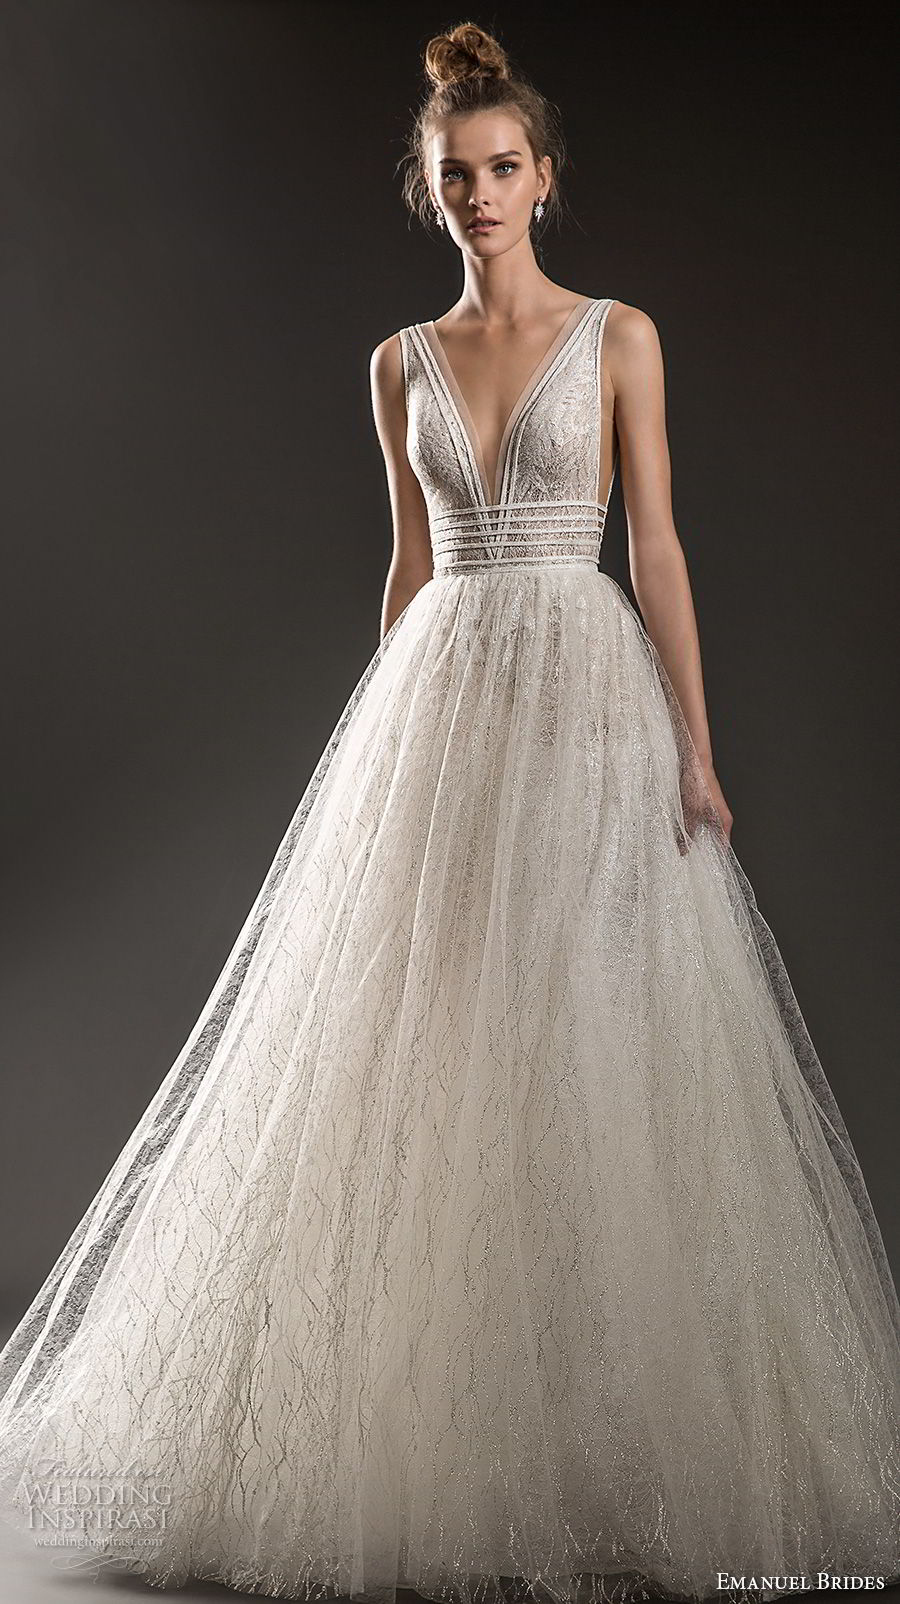 emanuel brides 2018 bridal sleeveless with strap deep plunging v neck side open romantic sexy a  line wedding dress sweep train (11) mv